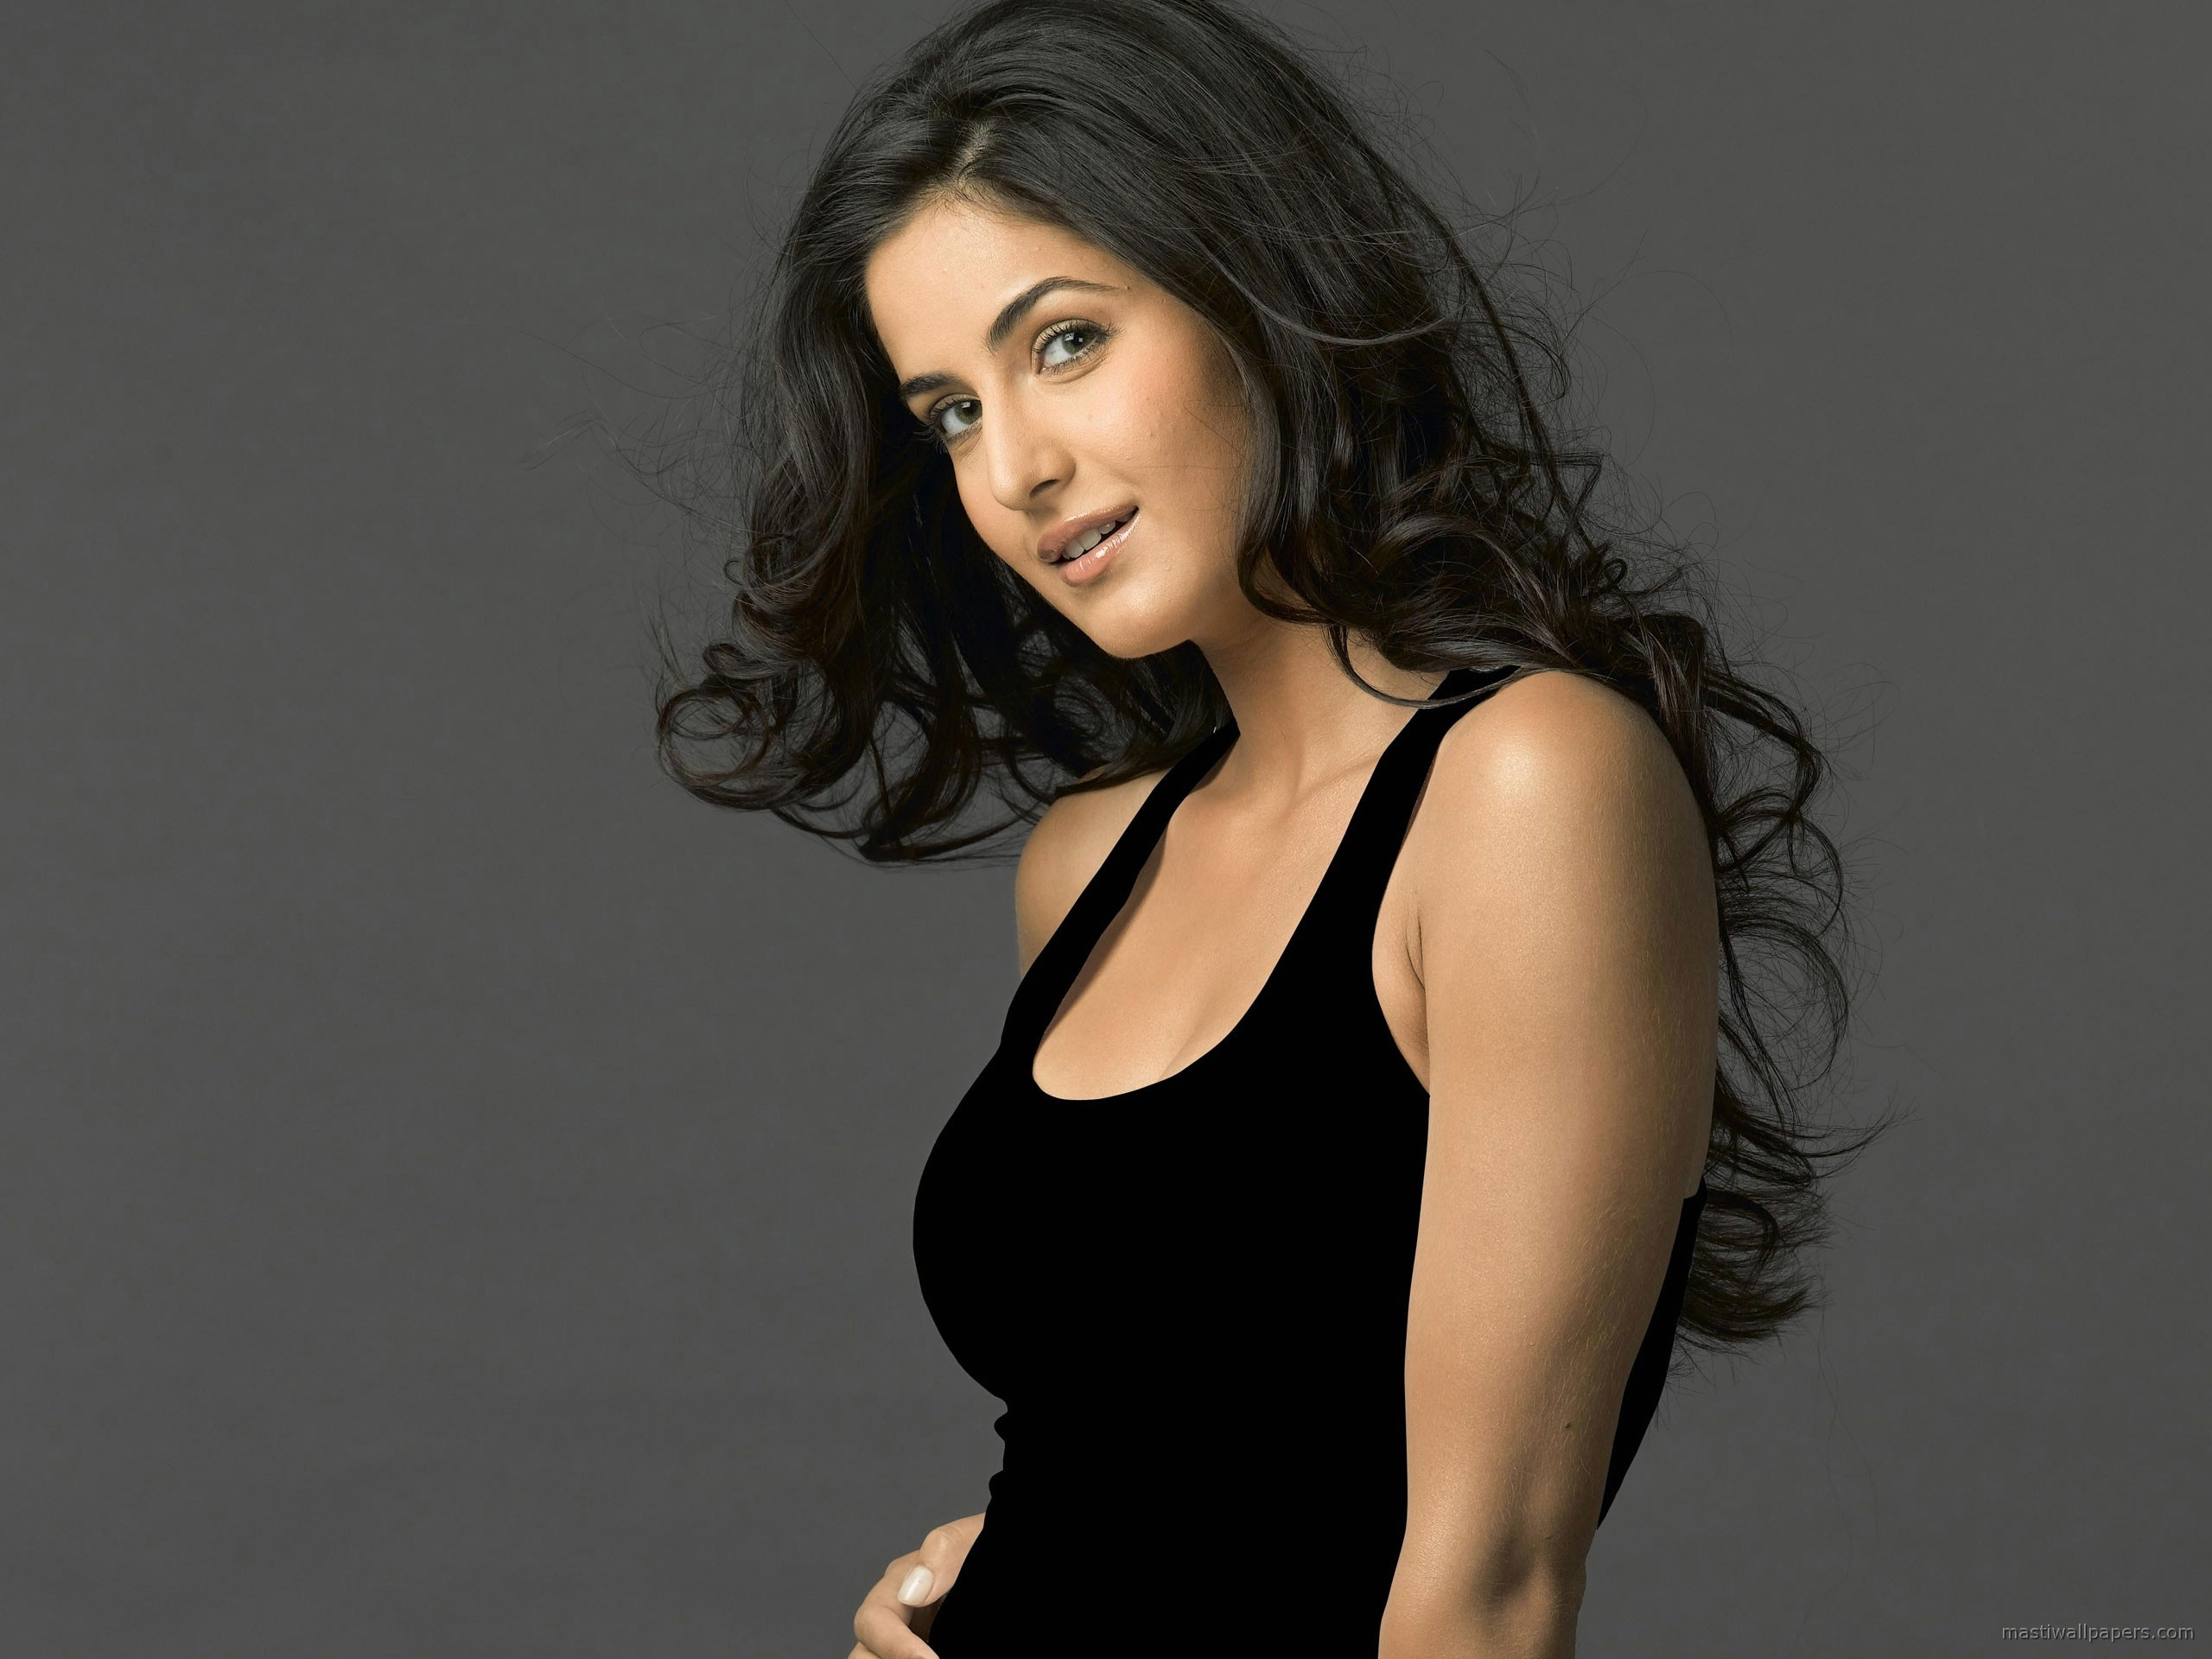 katrina kaif high resolution hd wallpapers in jpg format for free